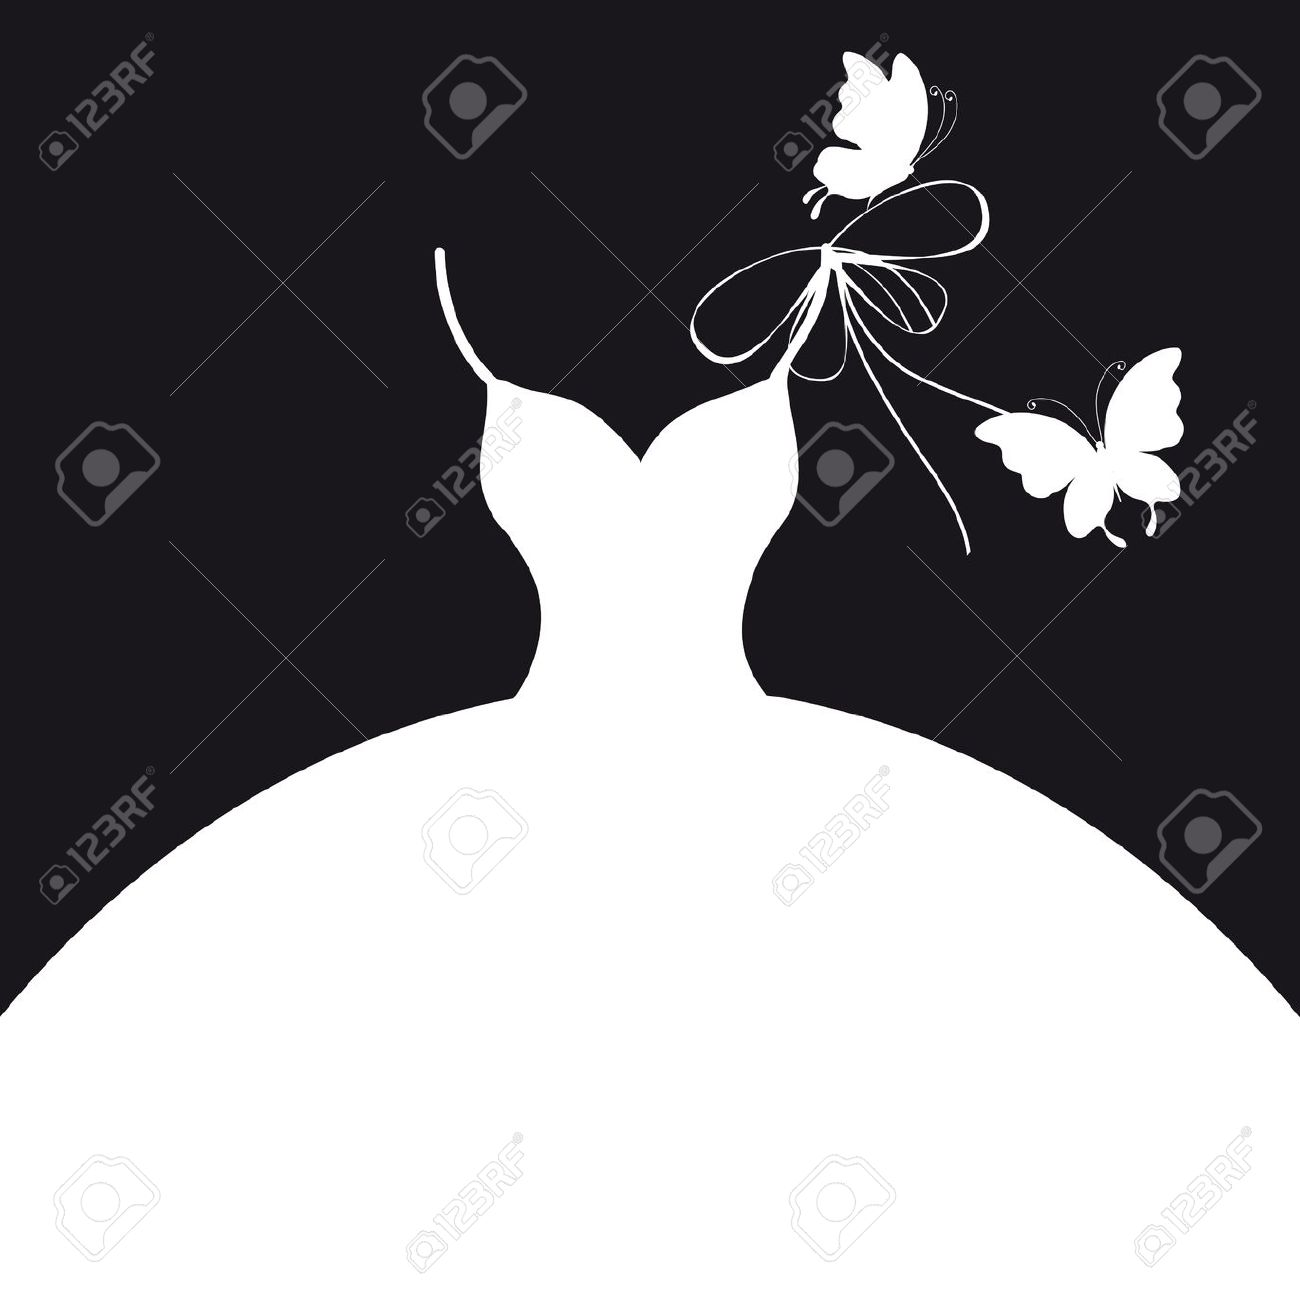 Bridal gown silhouette clipart svg free download Free Wedding Dress Clipart, Download Free Clip Art, Free Clip Art on ... svg free download